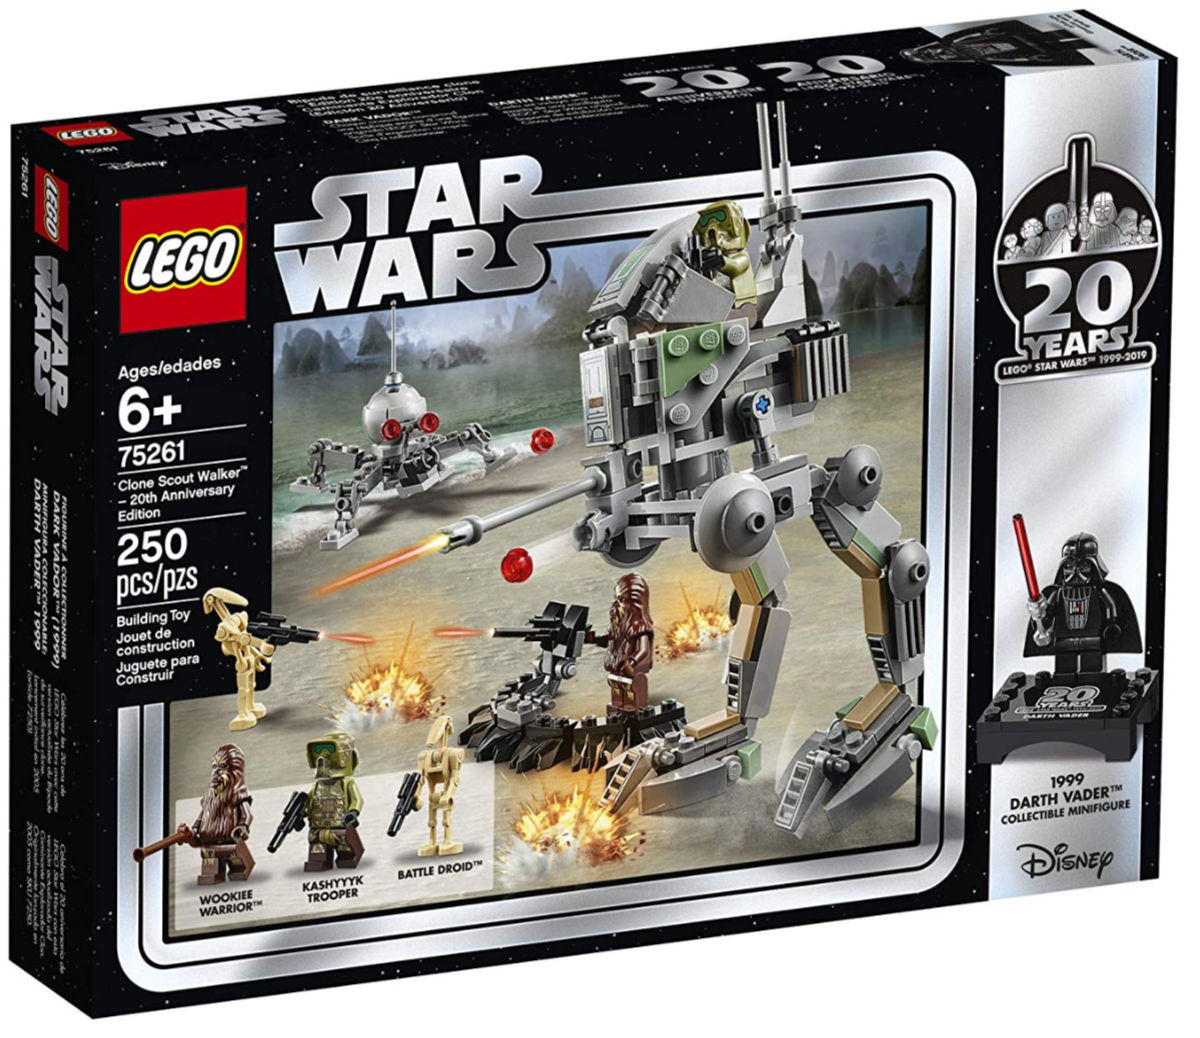 LEGO Star Wars Clone Scout Walker 20th Anniversary Edition Building Kit box